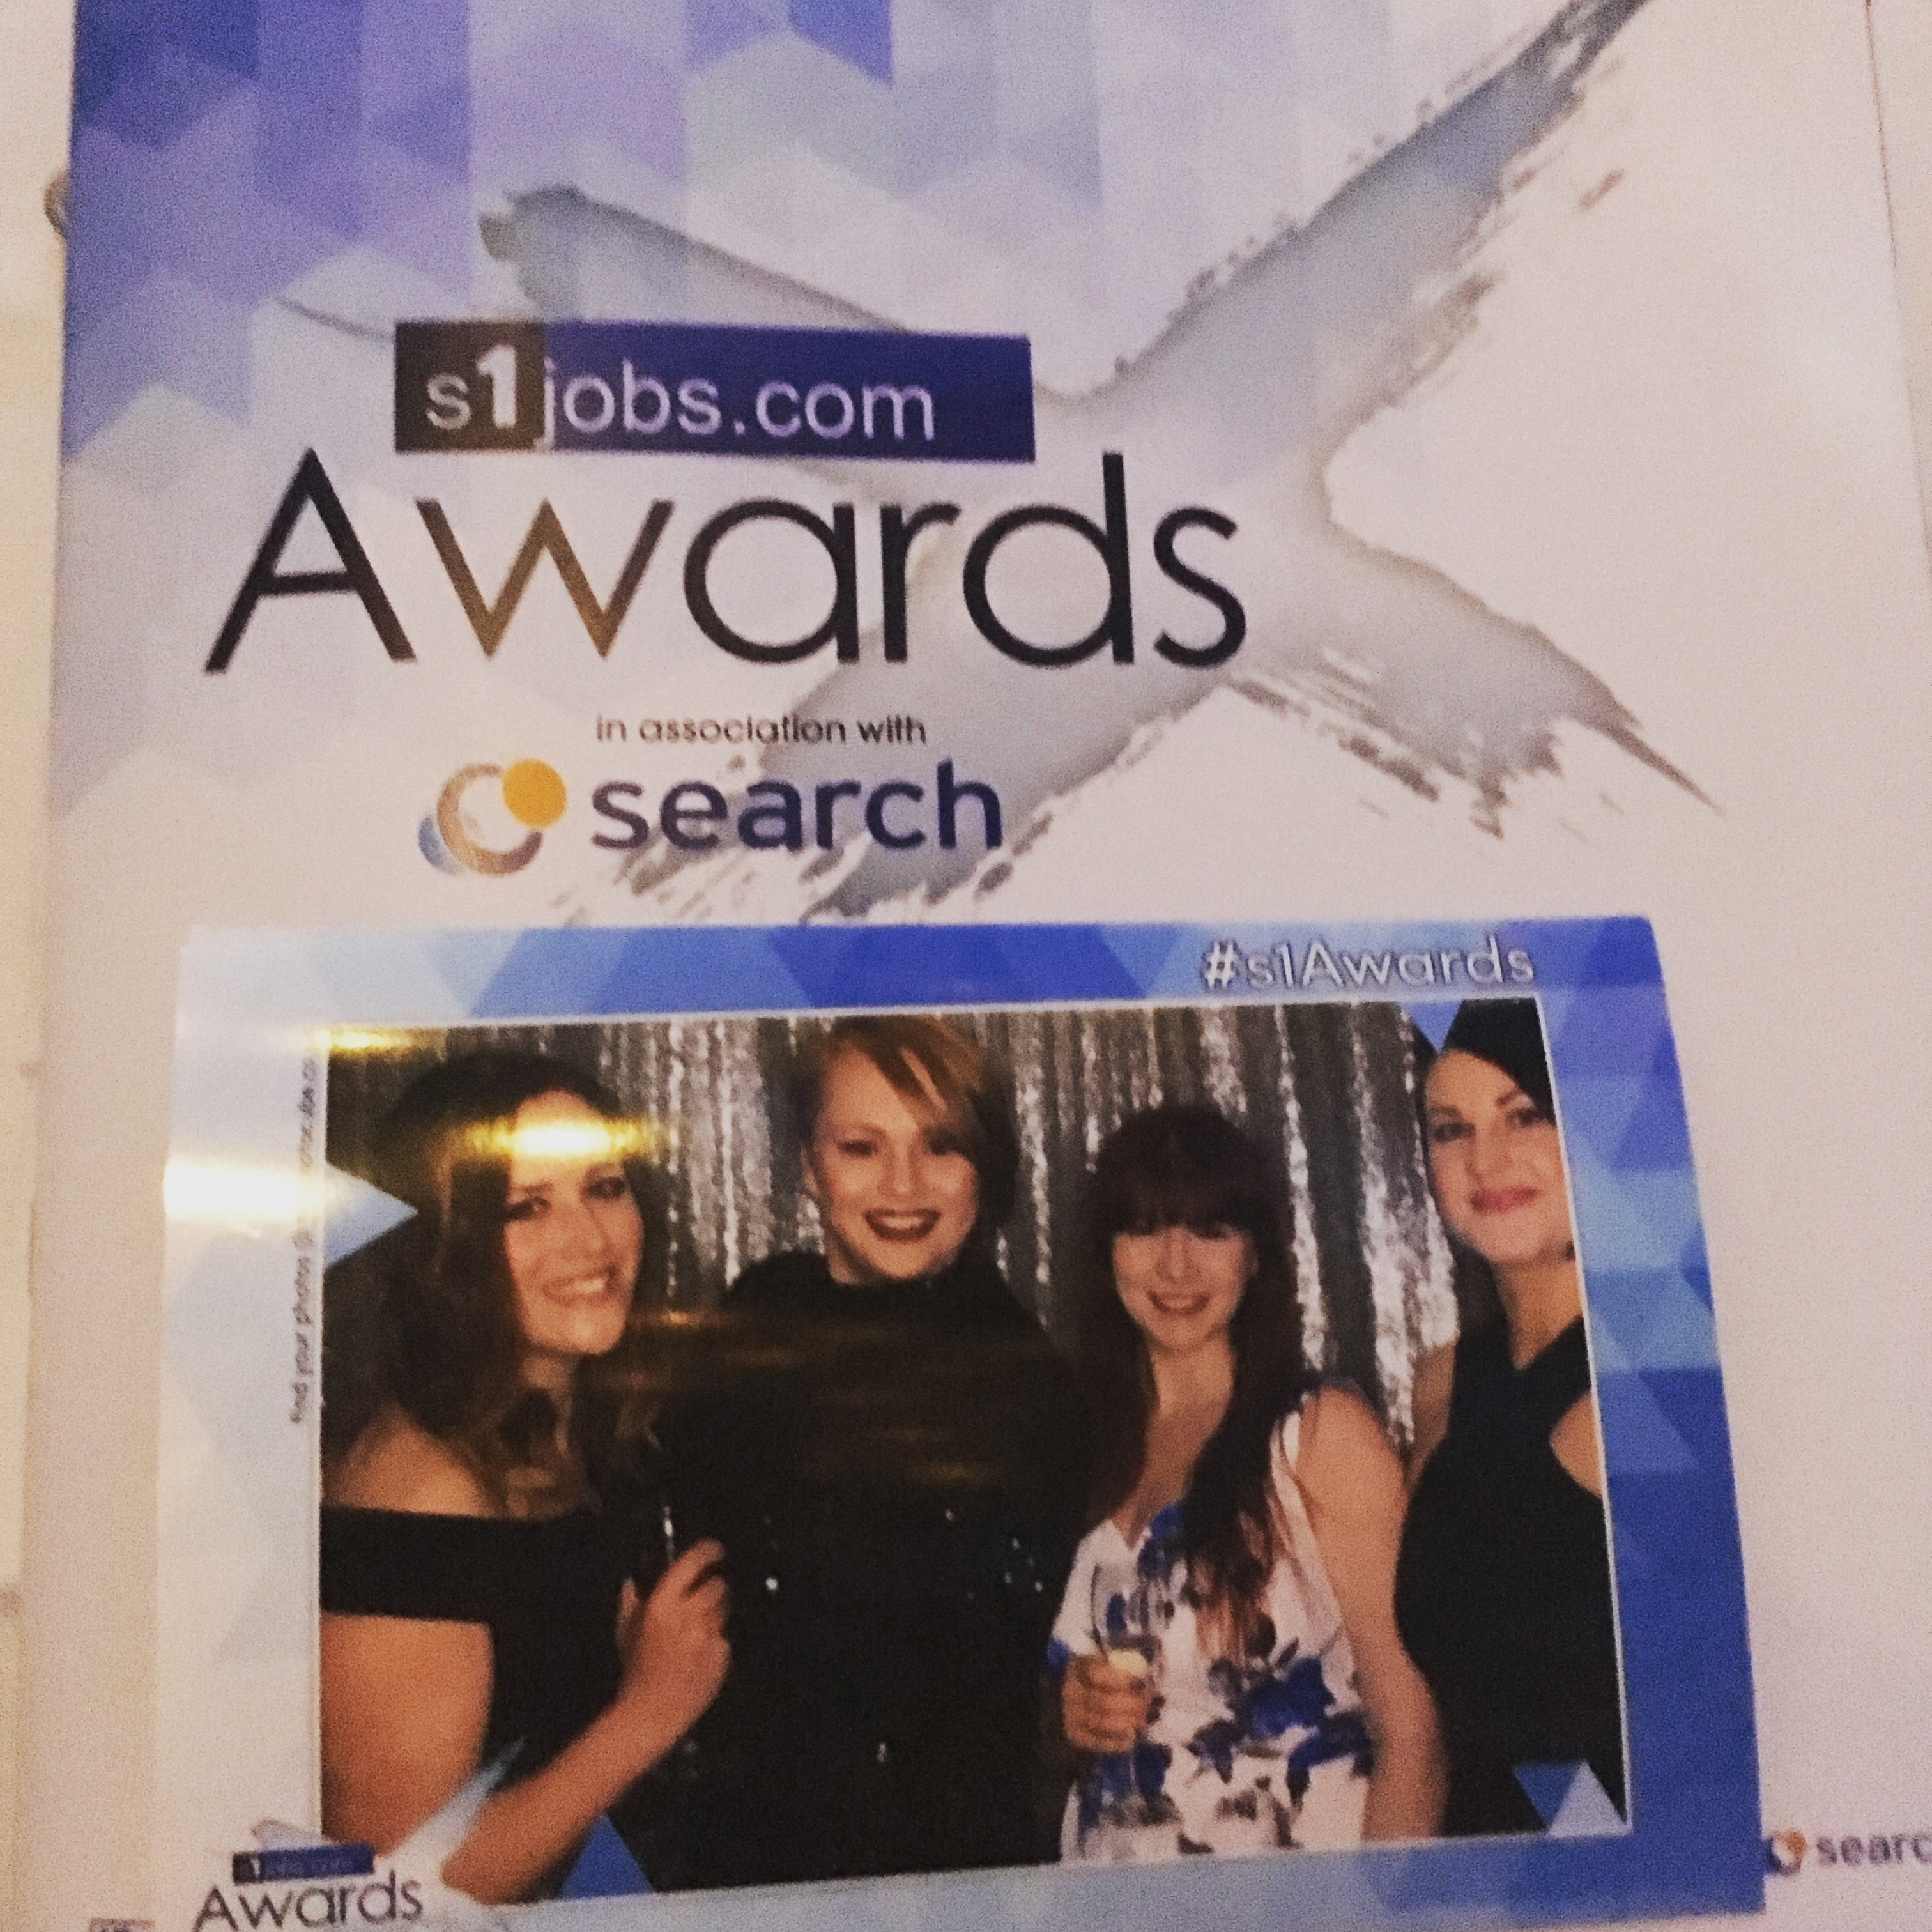 The Brochure for the S1 Awards, with a Firefish Photobooth Photo